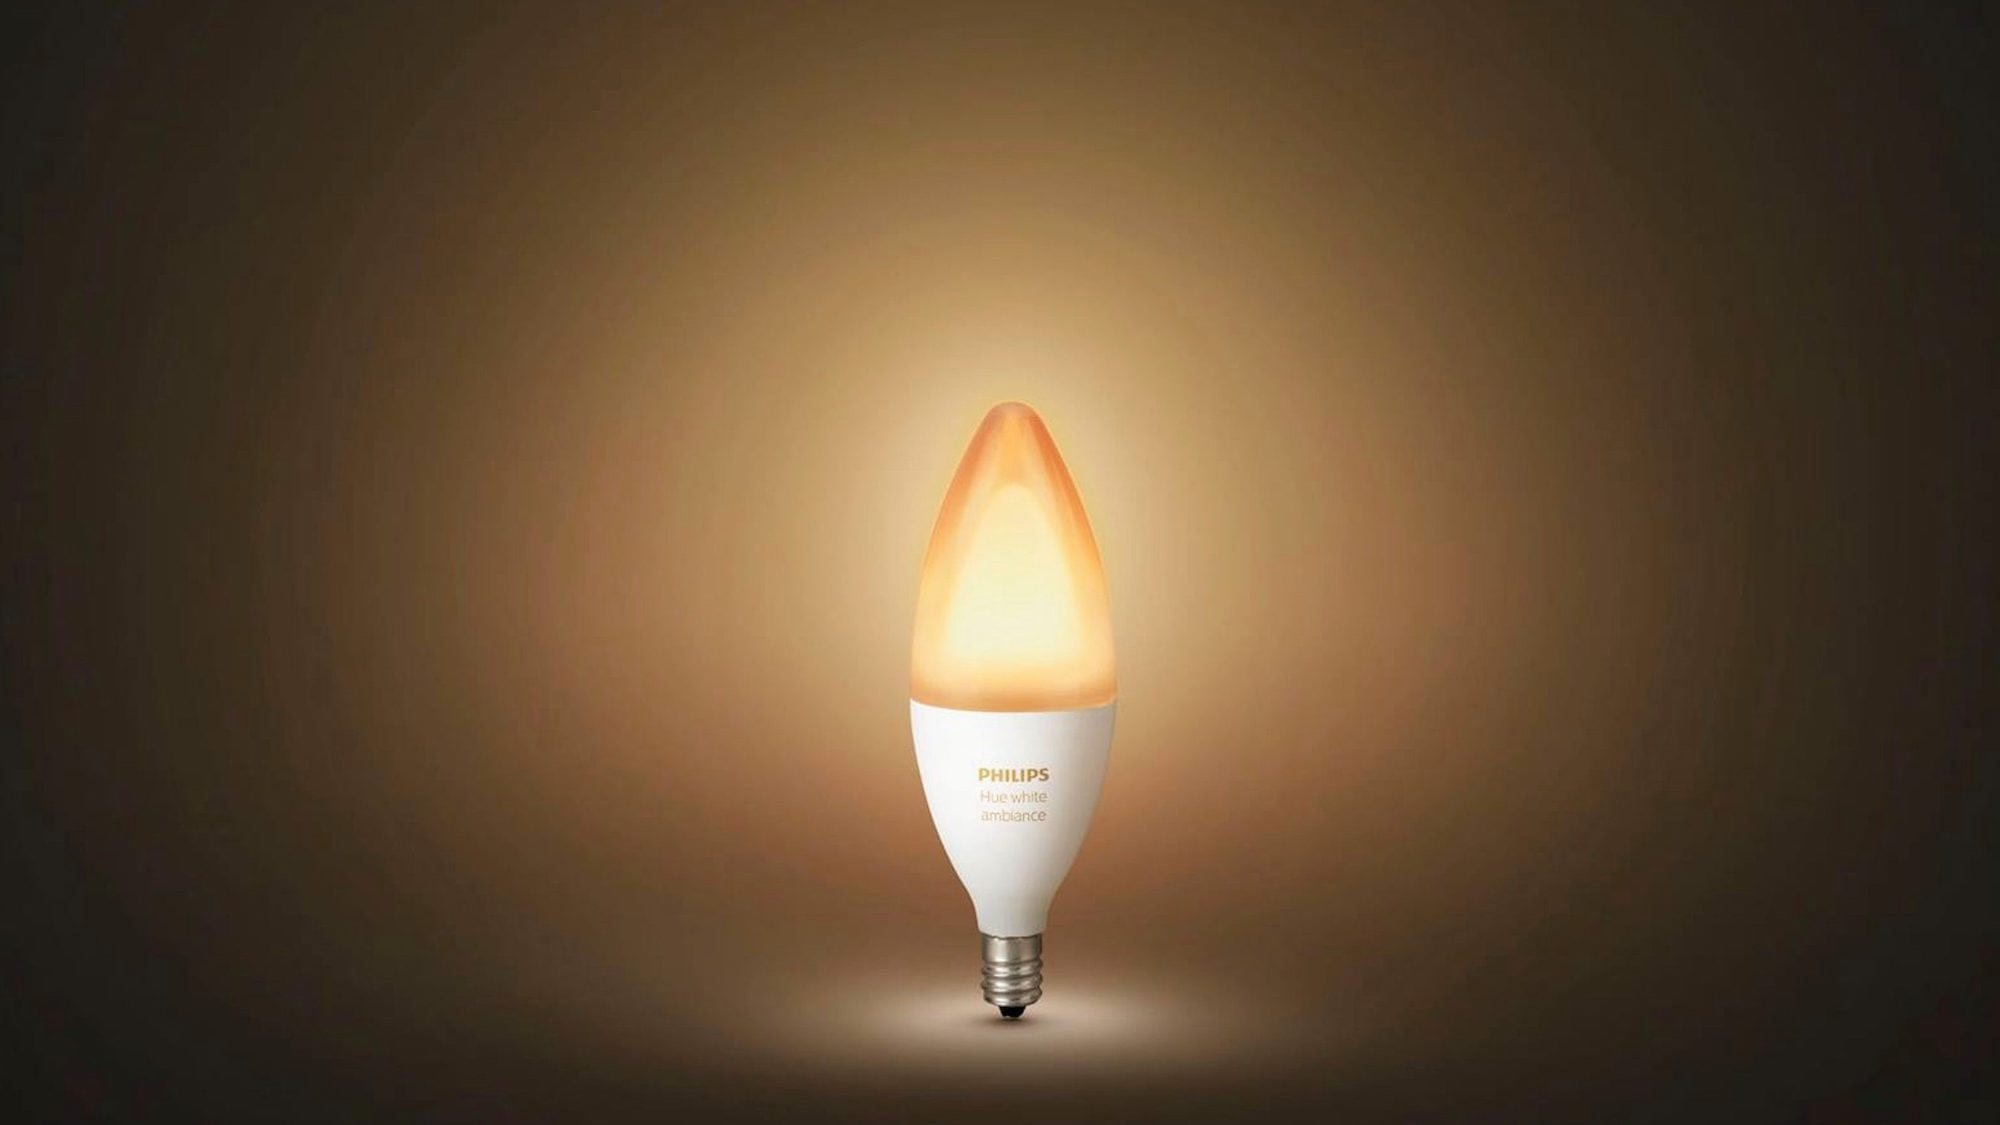 Philips Hue E12 candelabra Bluetooth bulb is easy to control with your phone